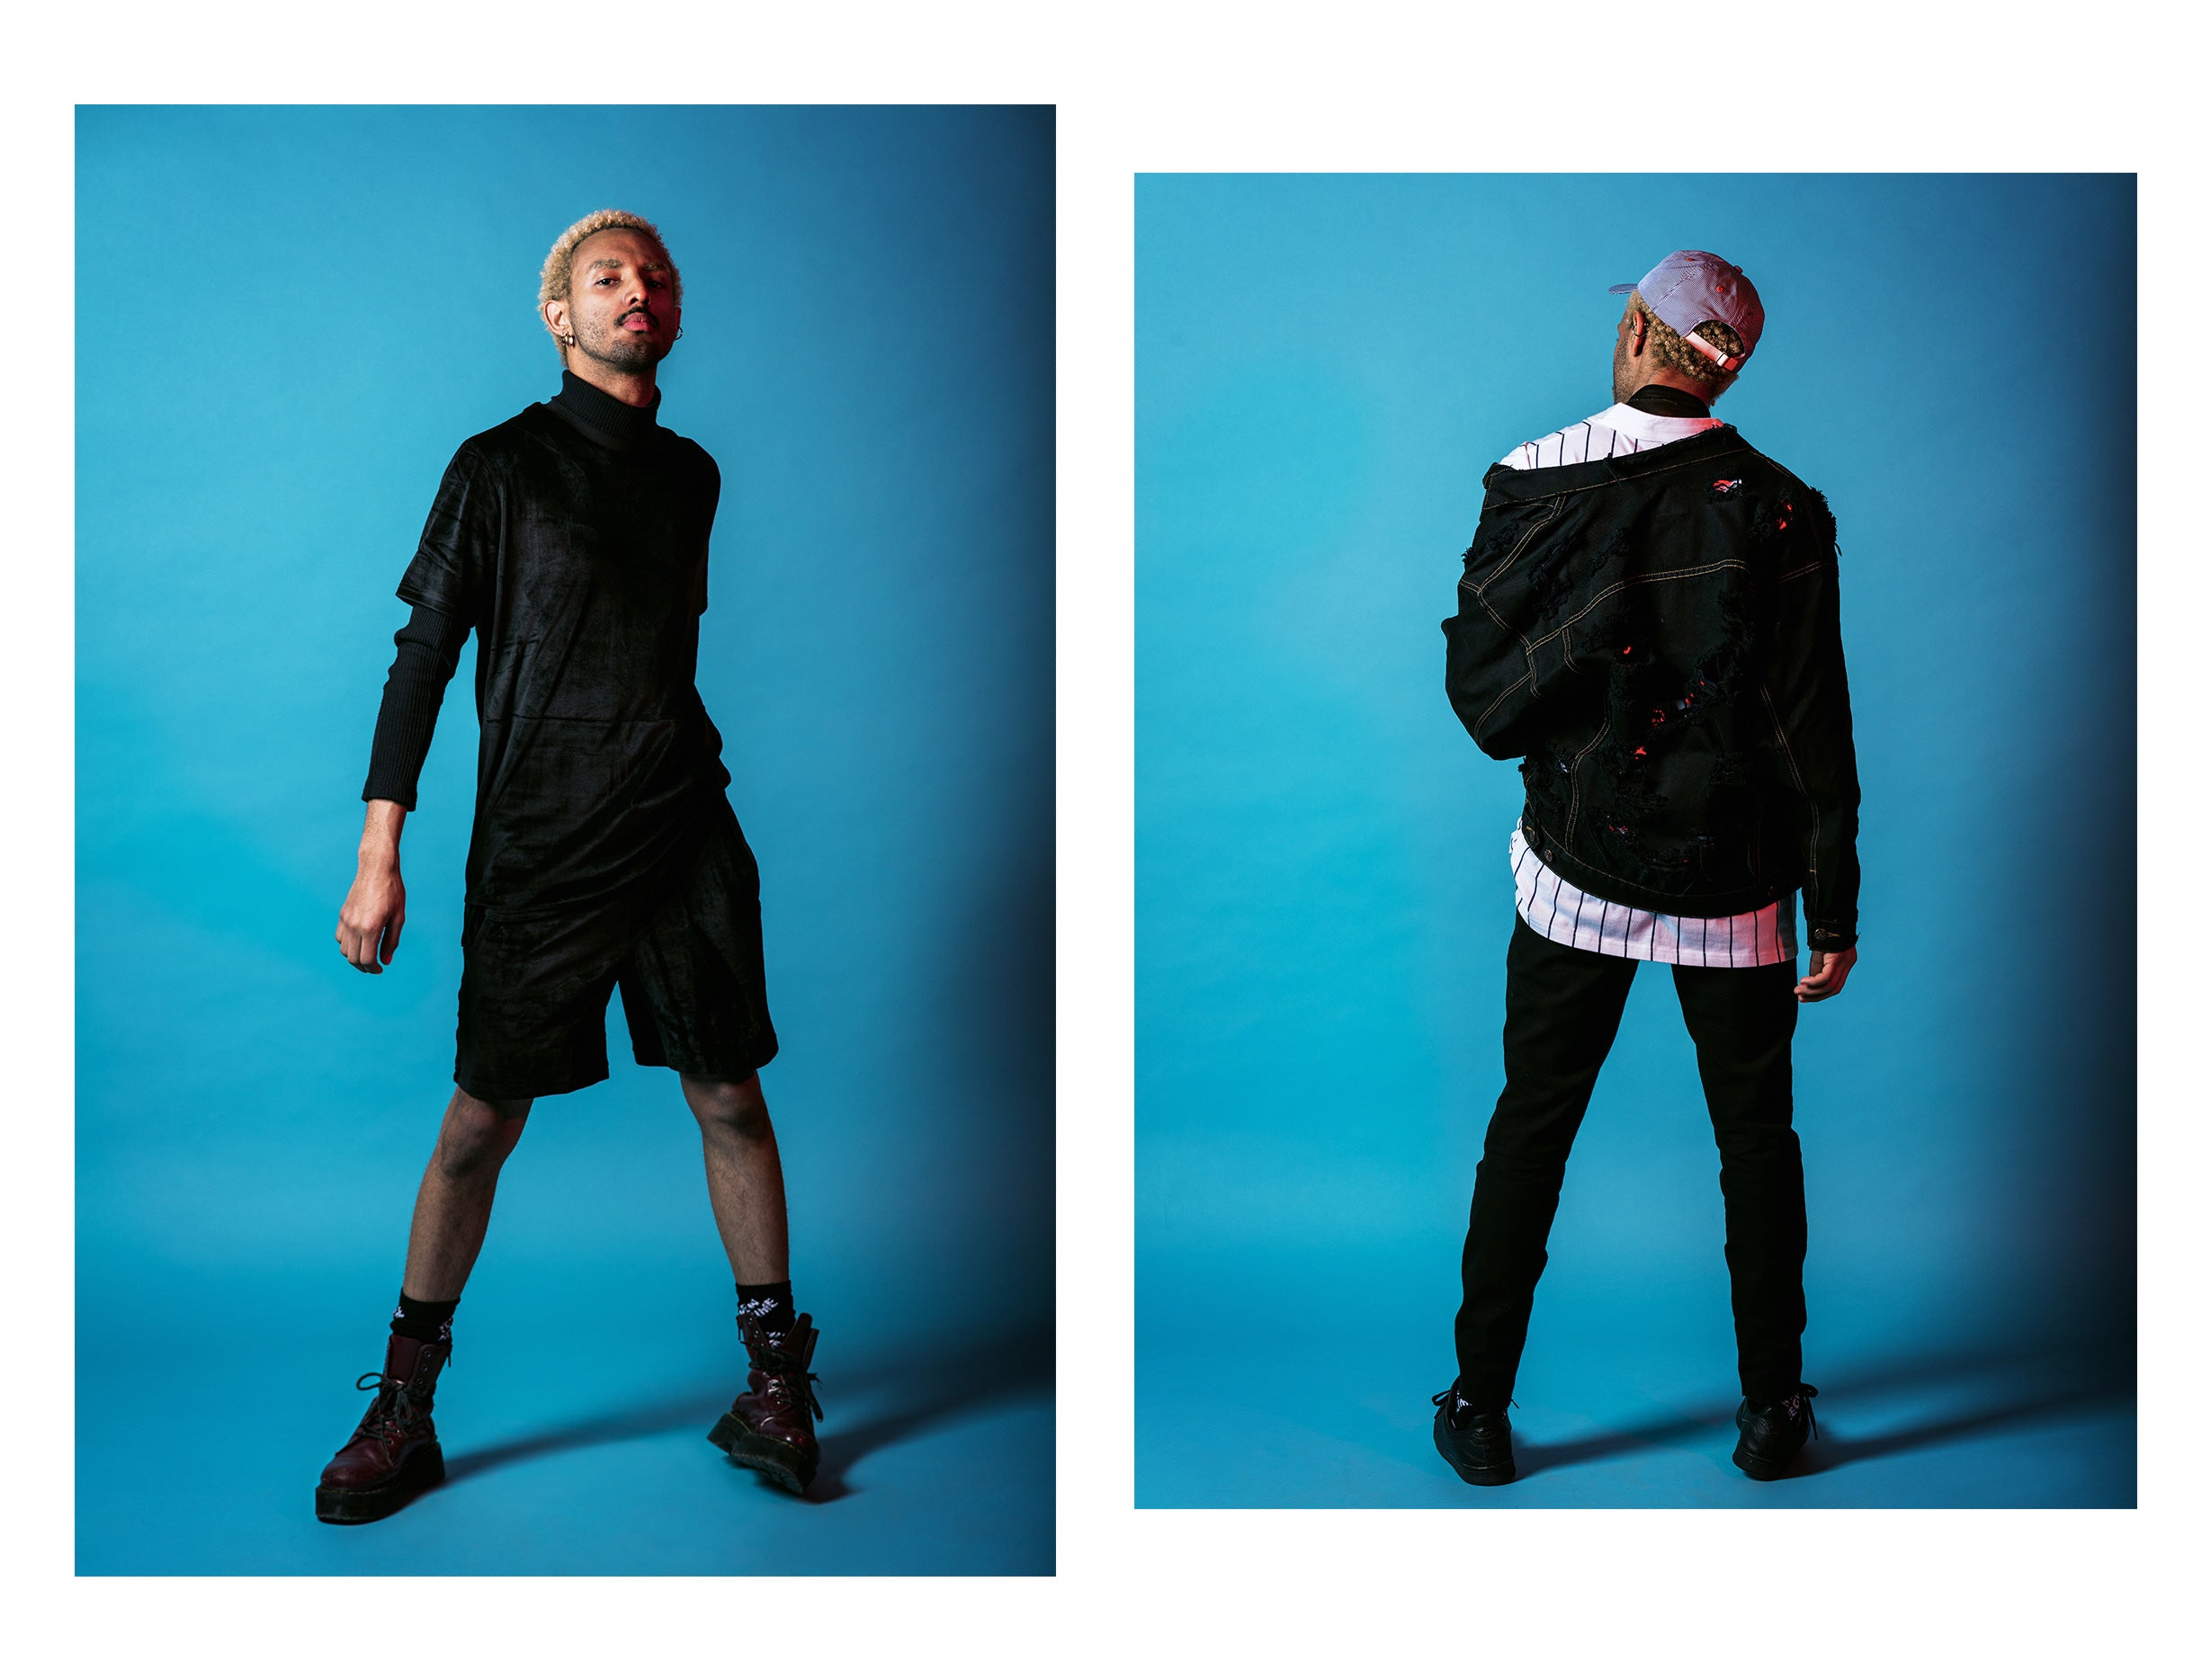 Magazine Boy for Atelier New Regime